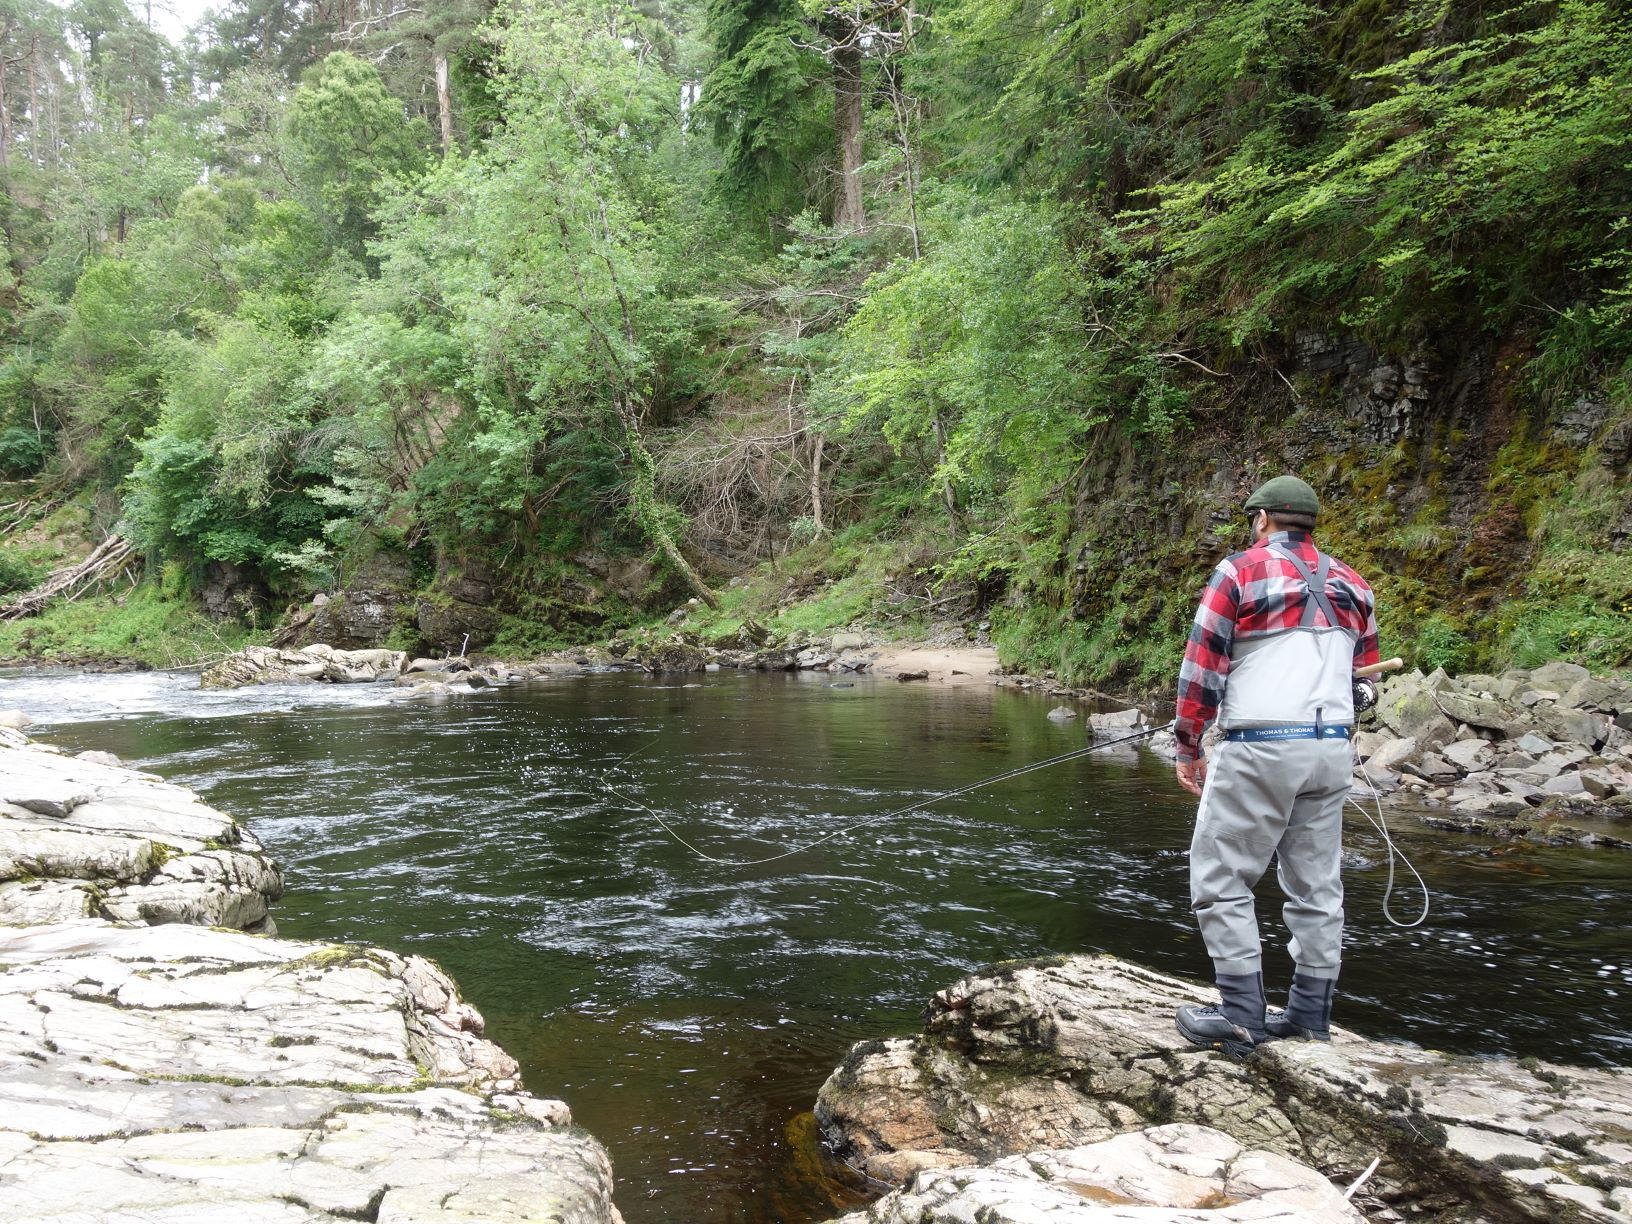 Mark Zuzarte from USA casts a line over the Lower Flags Pool on Upper Home Beat, Darnaway, River Findhorn